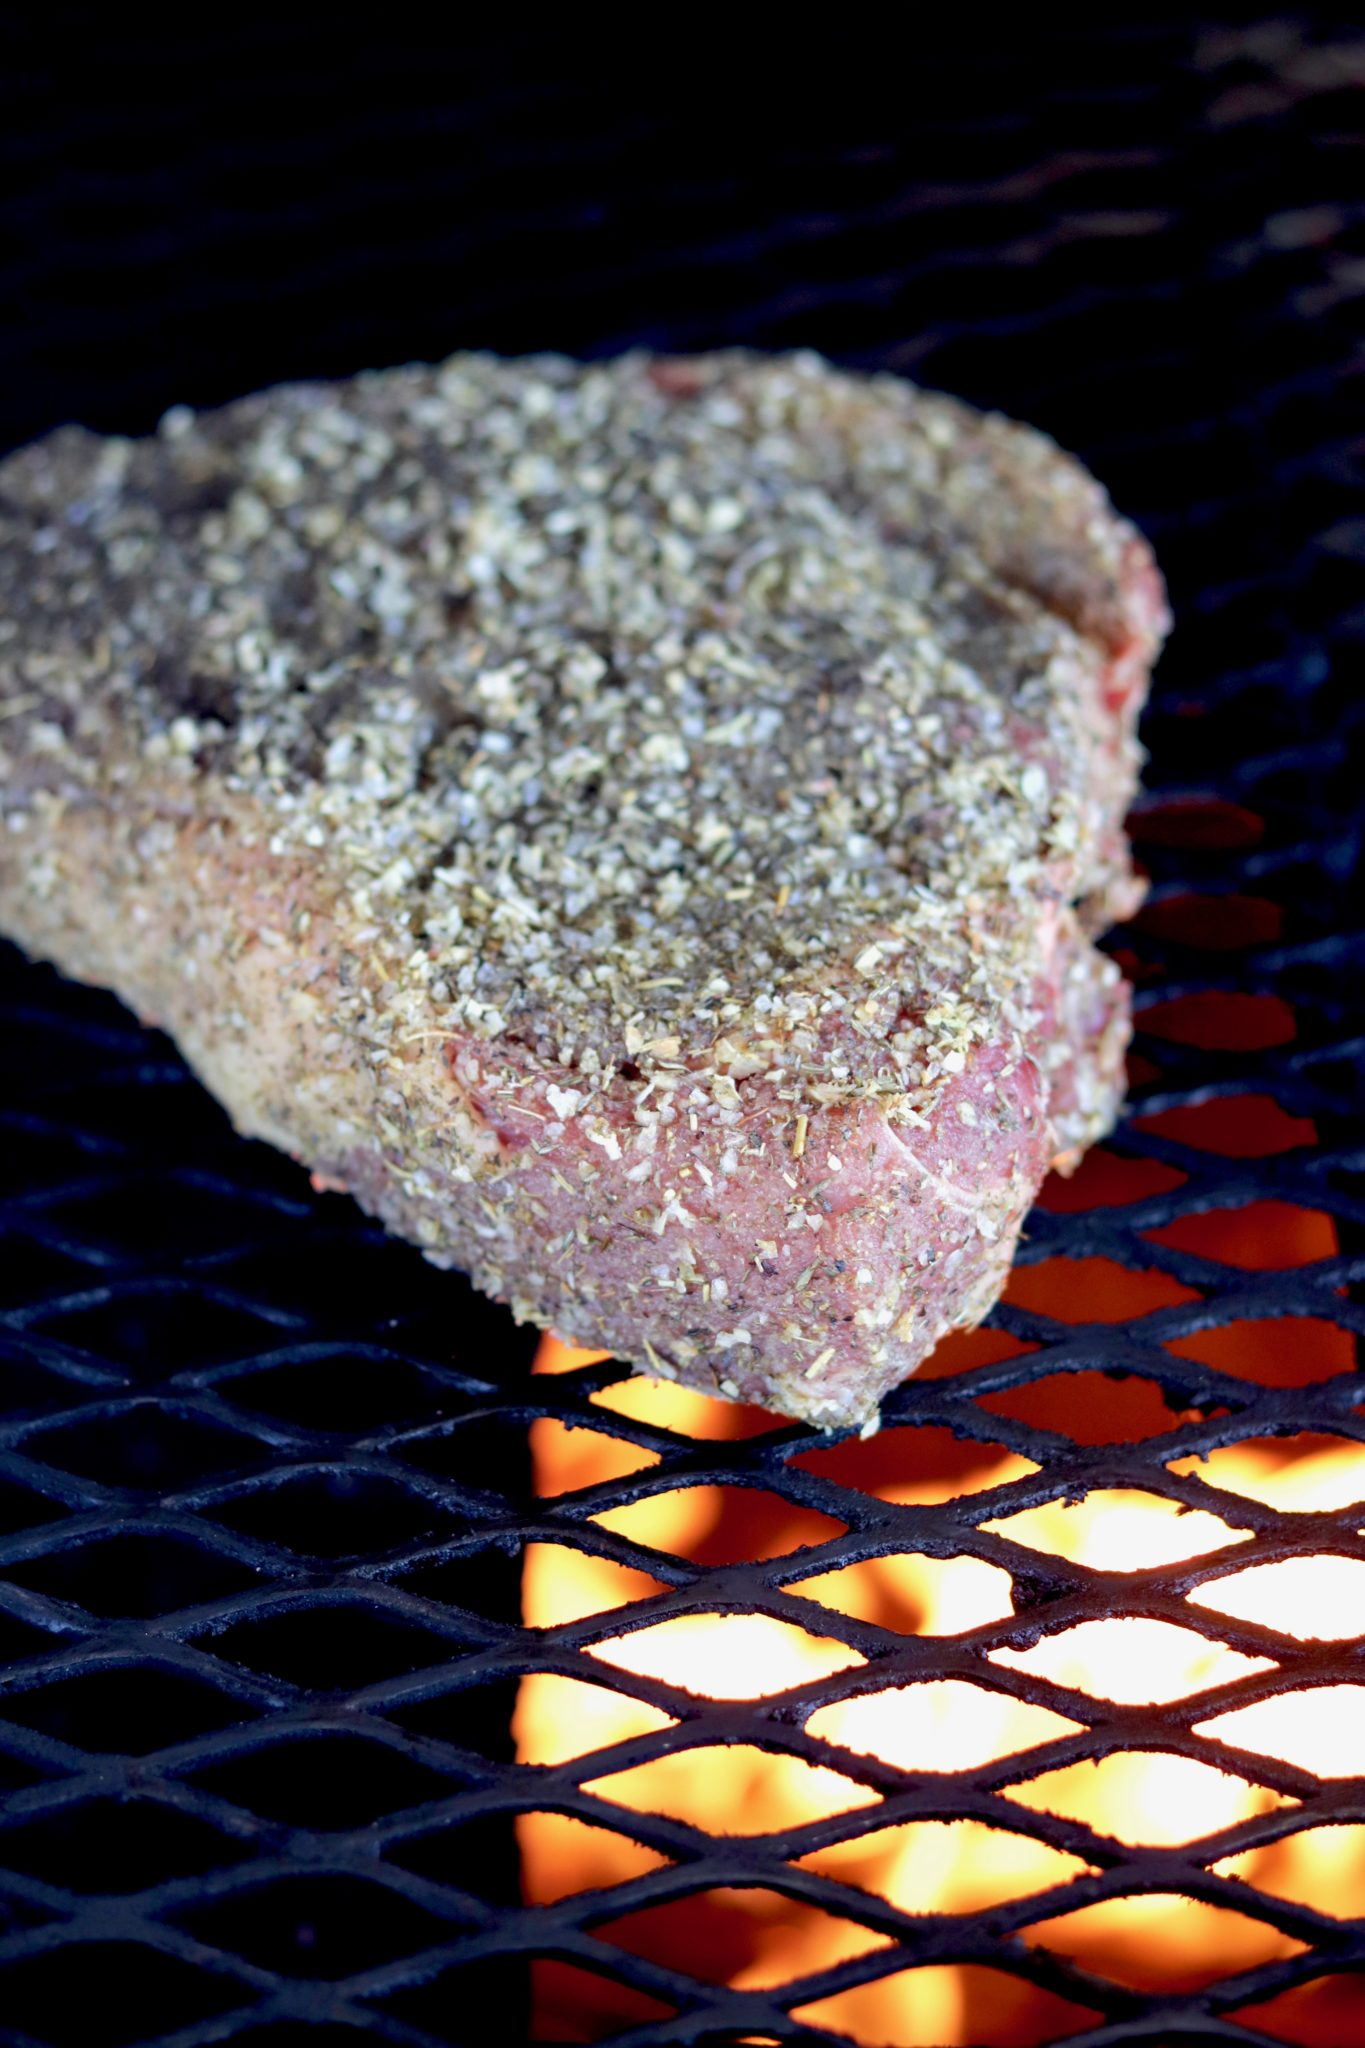 Roast on a grill with herb rub